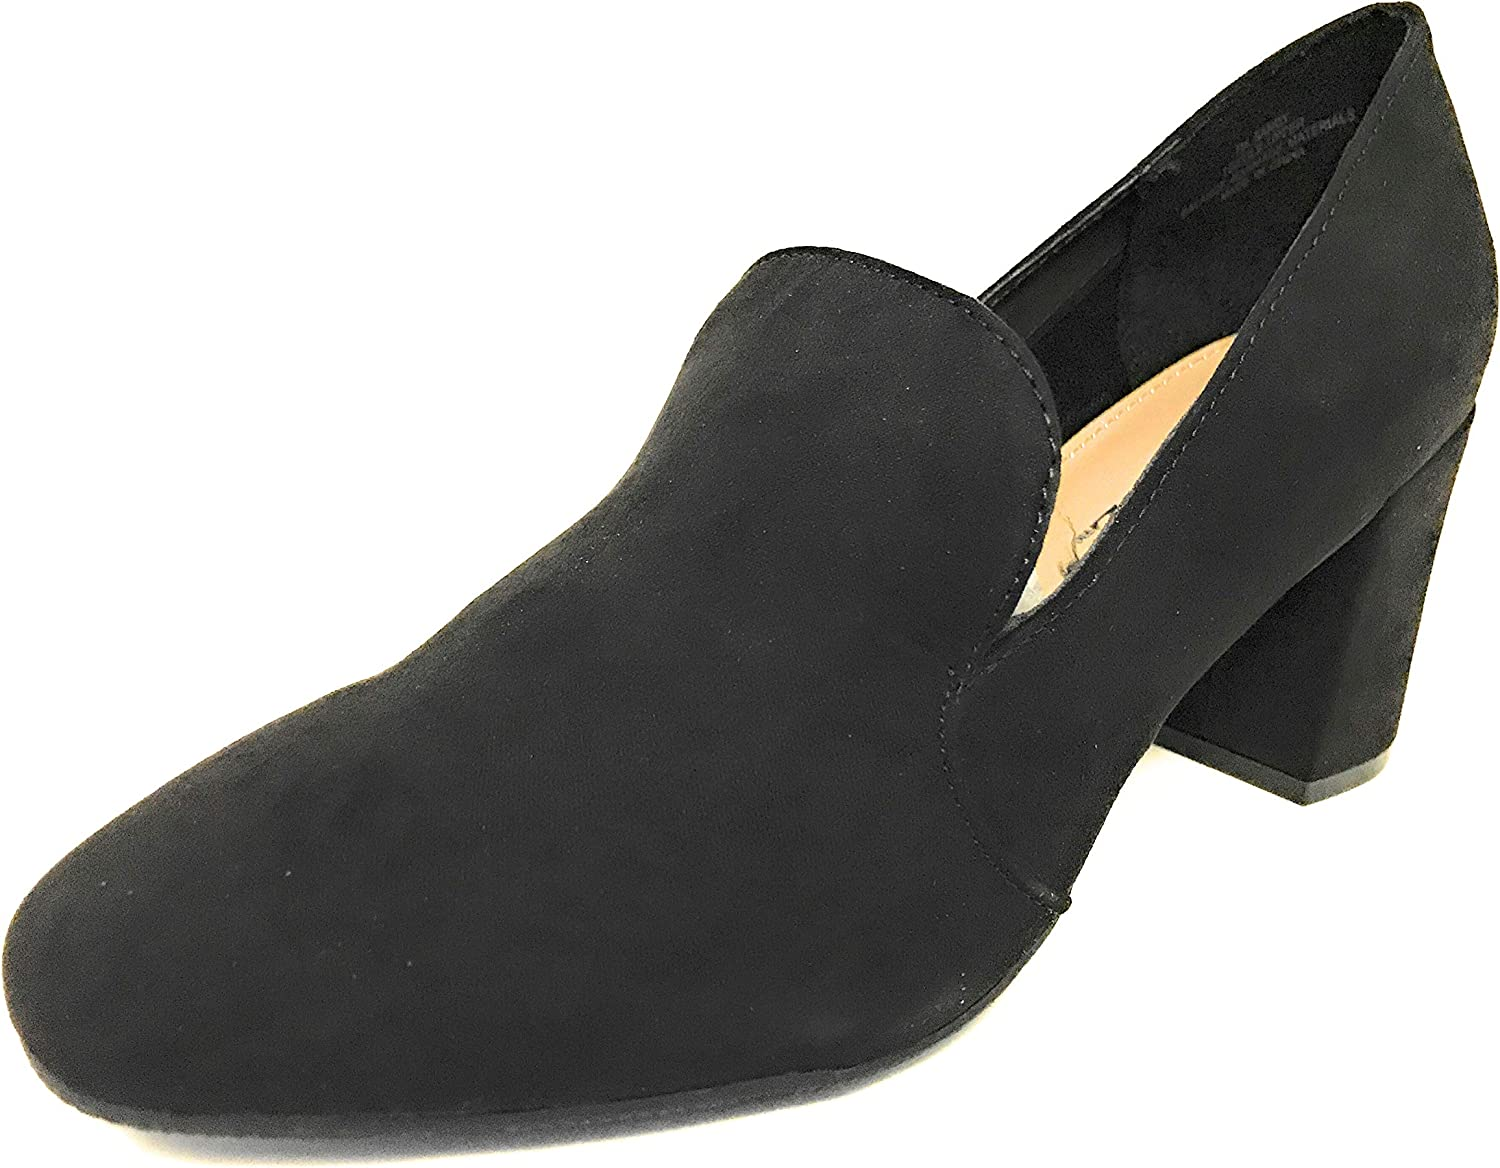 Solanz Women's Sandy Heeled Loafers Black